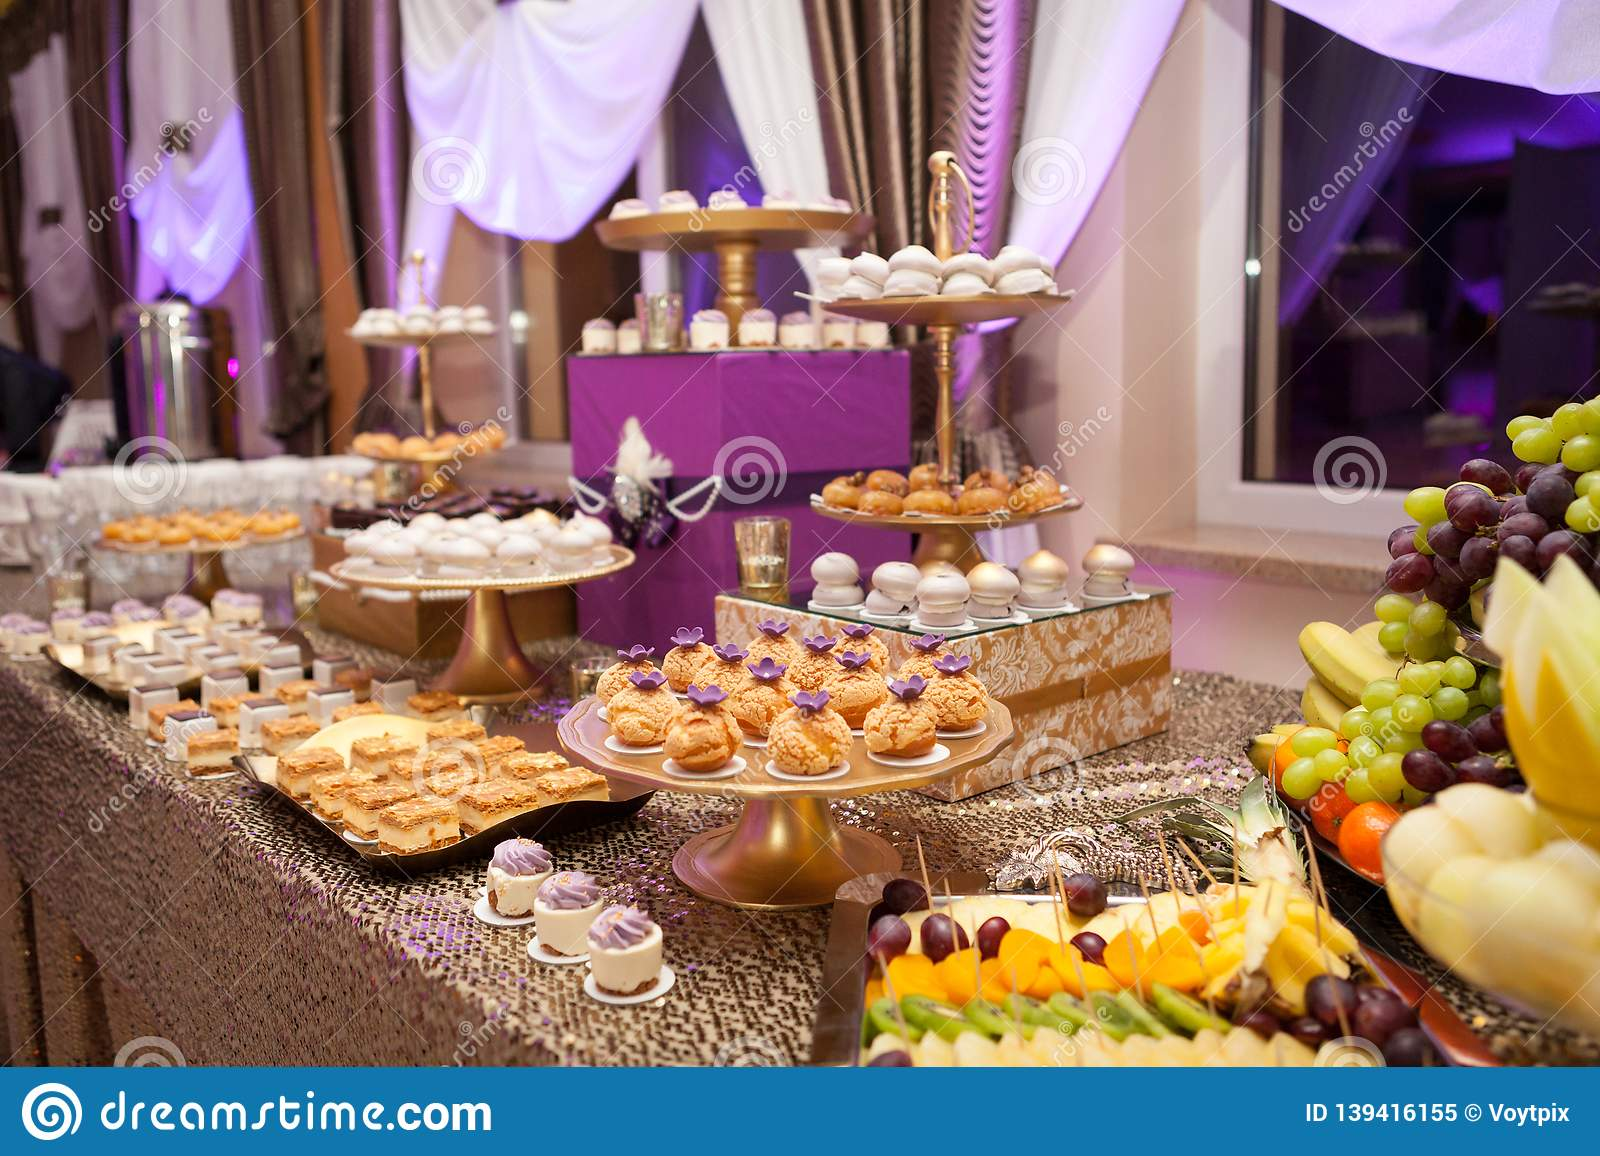 Christmas Birthday Party.Banquet Table With Different Food Snacks Appetizers And